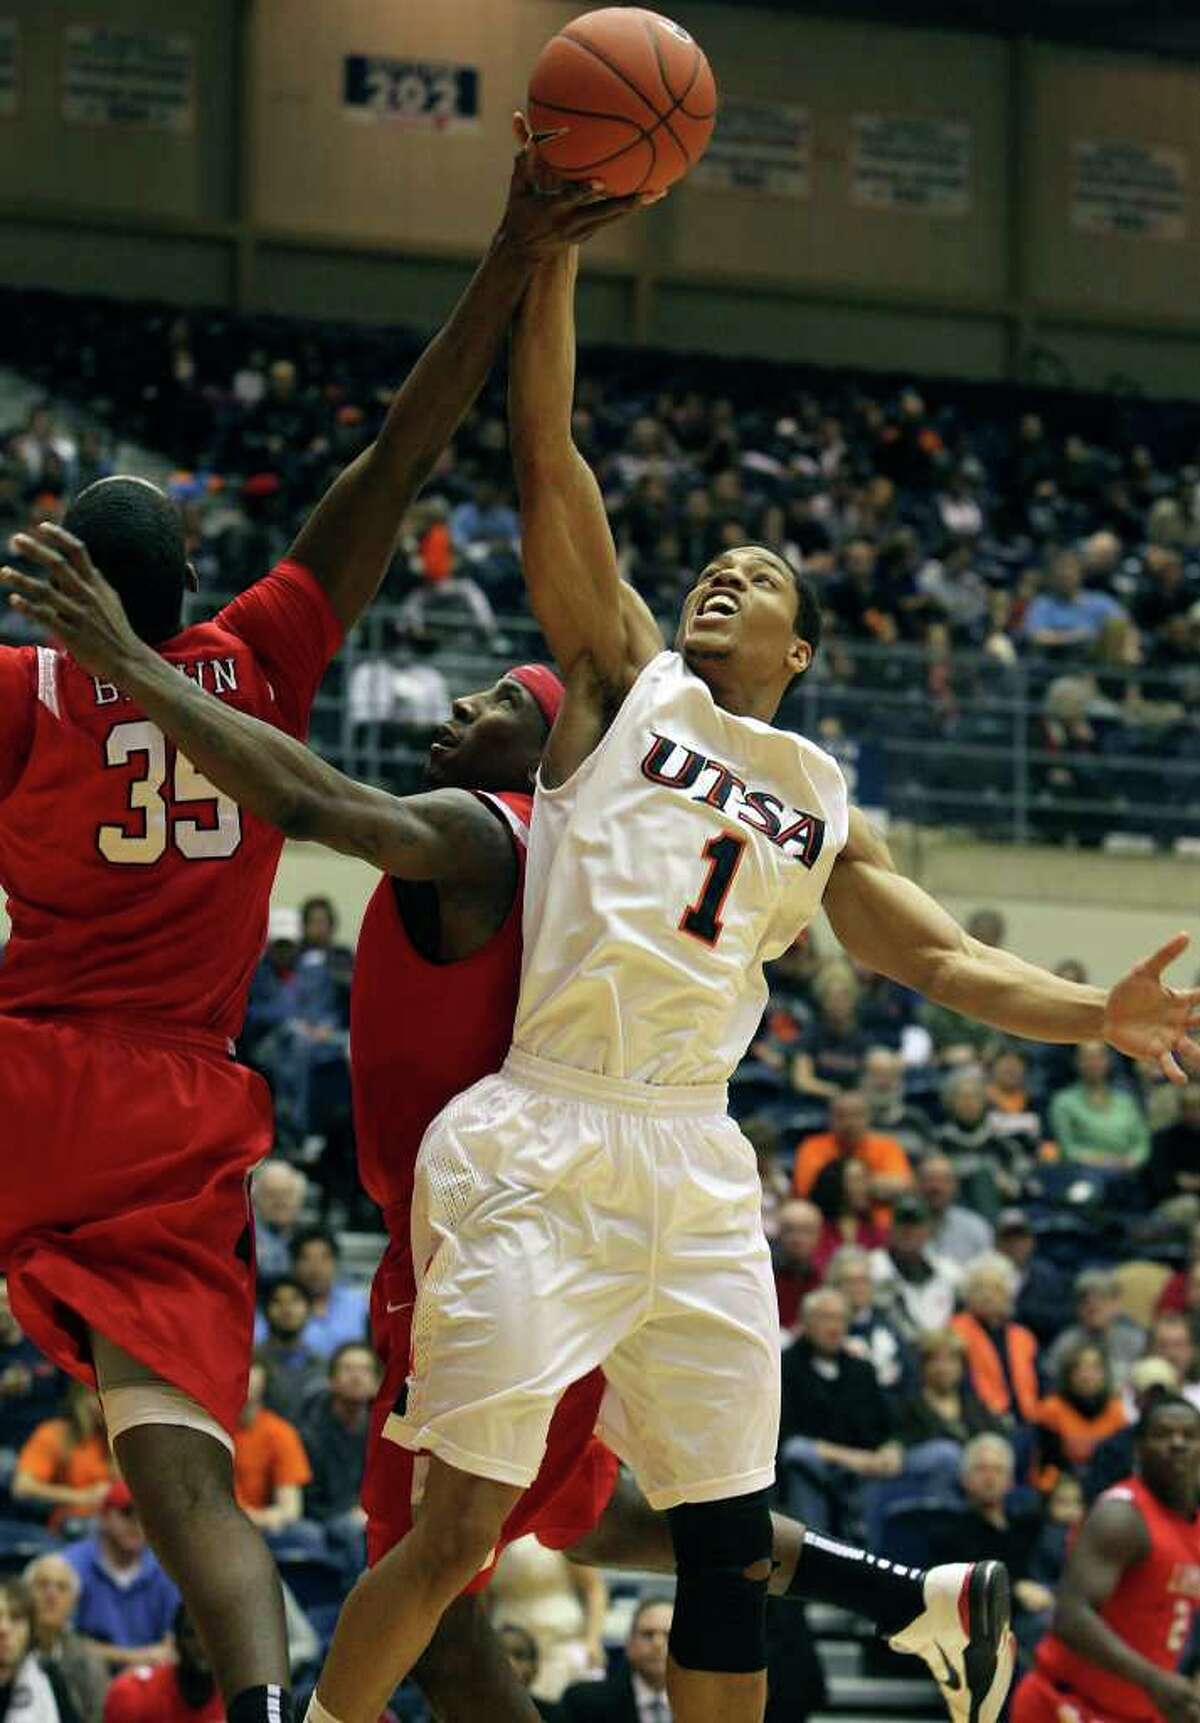 SPORTS Stephen Franklin grabs an offensive rebound in the first half as UTSA plays Lamar in mens' basketball at the UTSA Convocation Center on February 5, 2011. Tom Reel/Staff